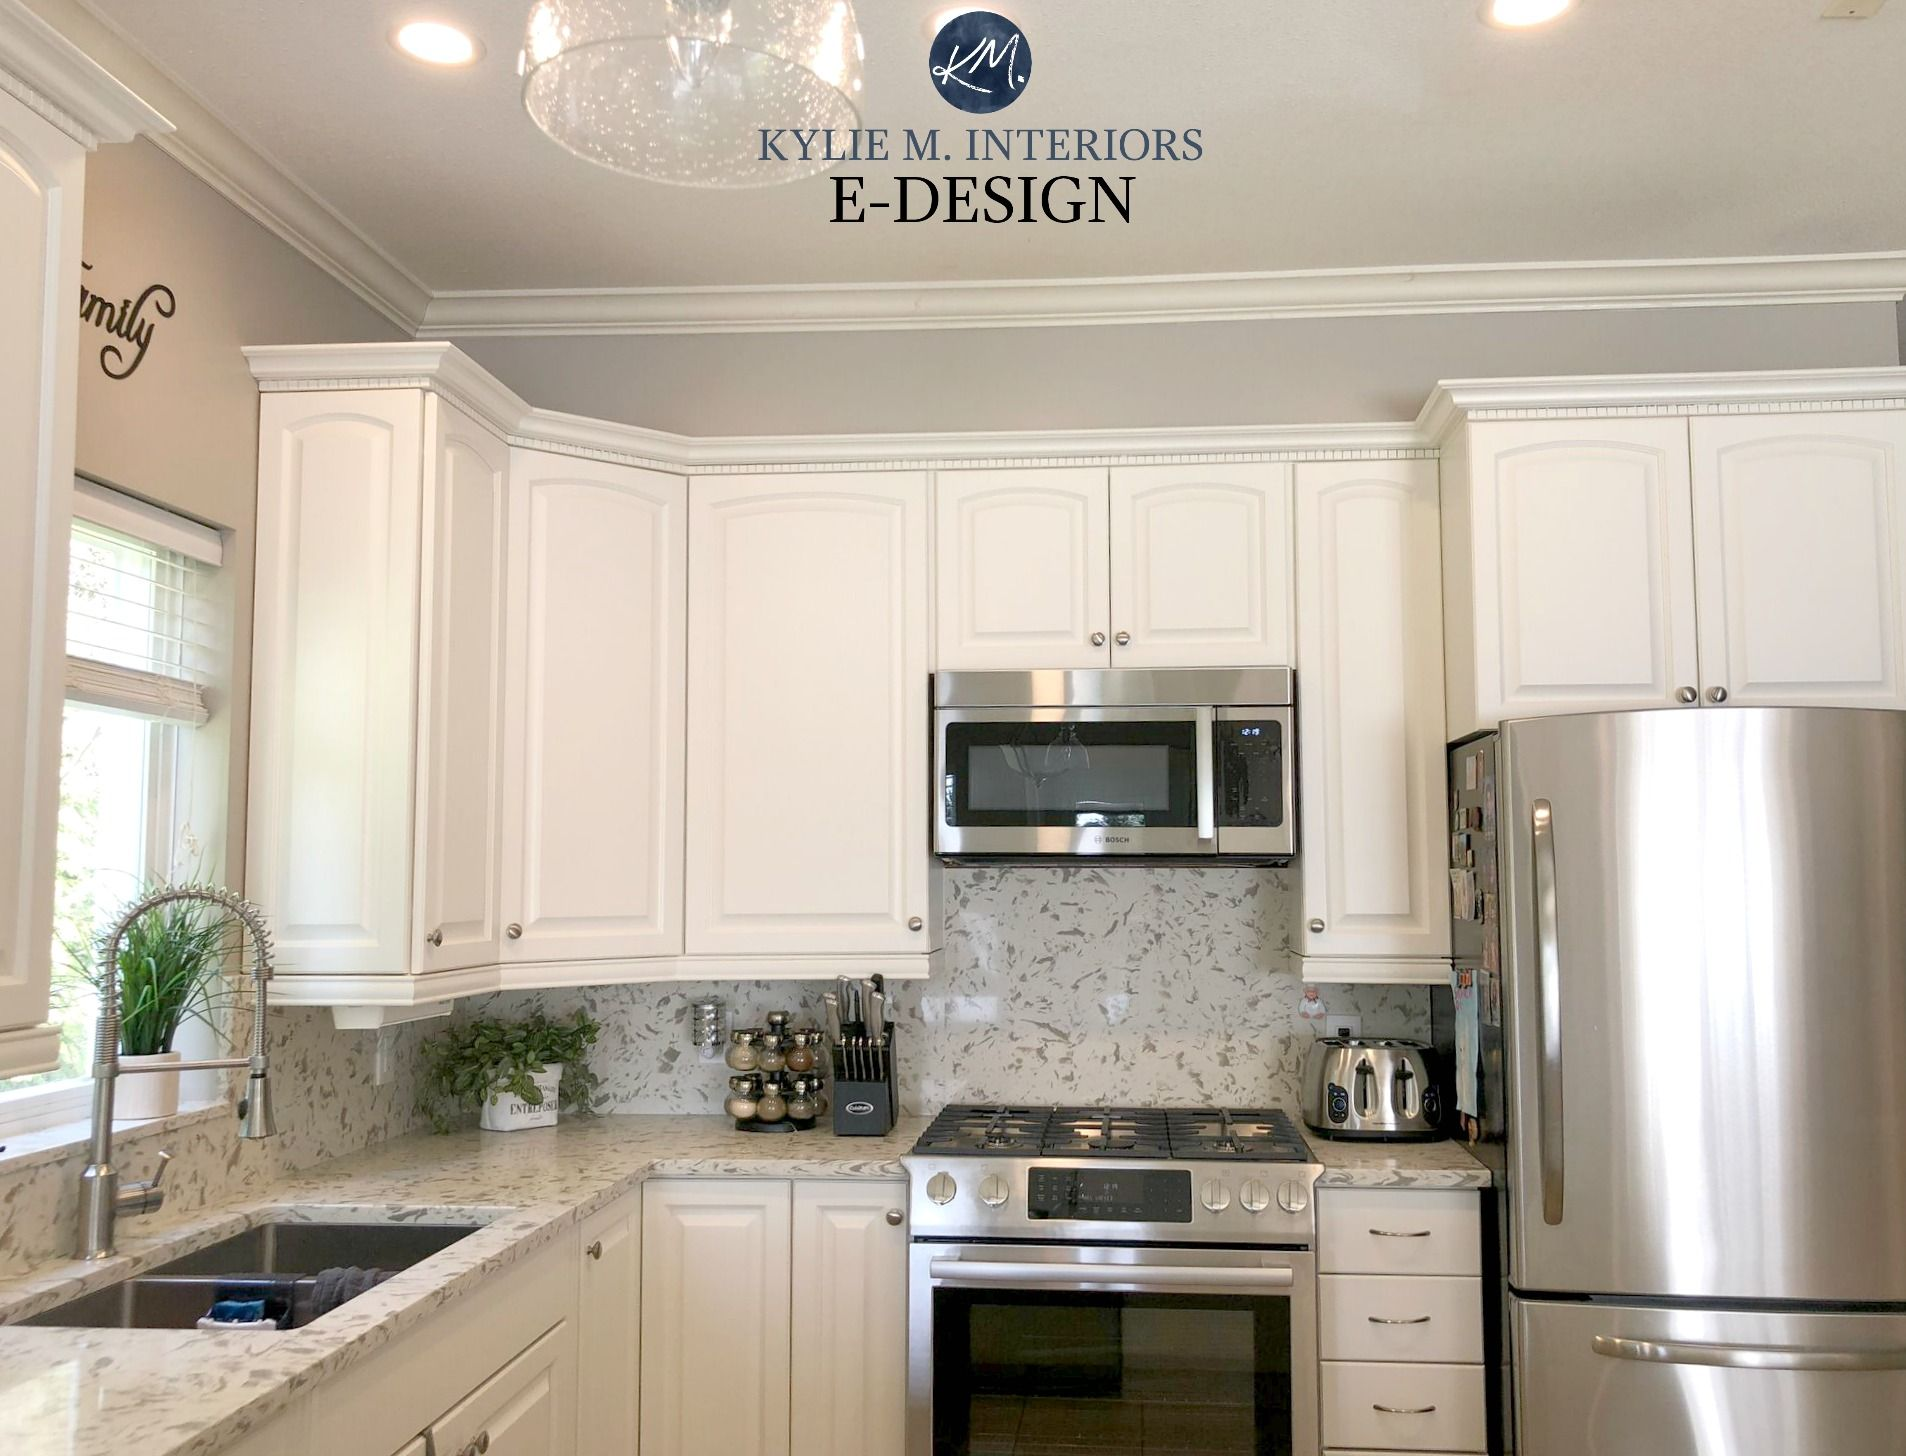 The 4 Best White Paint Colours For Cabinets Benjamin Moore And Sherwin Williams In 2020 Painting Kitchen Cabinets Kitchen Colors Kitchen Cabinet Colors